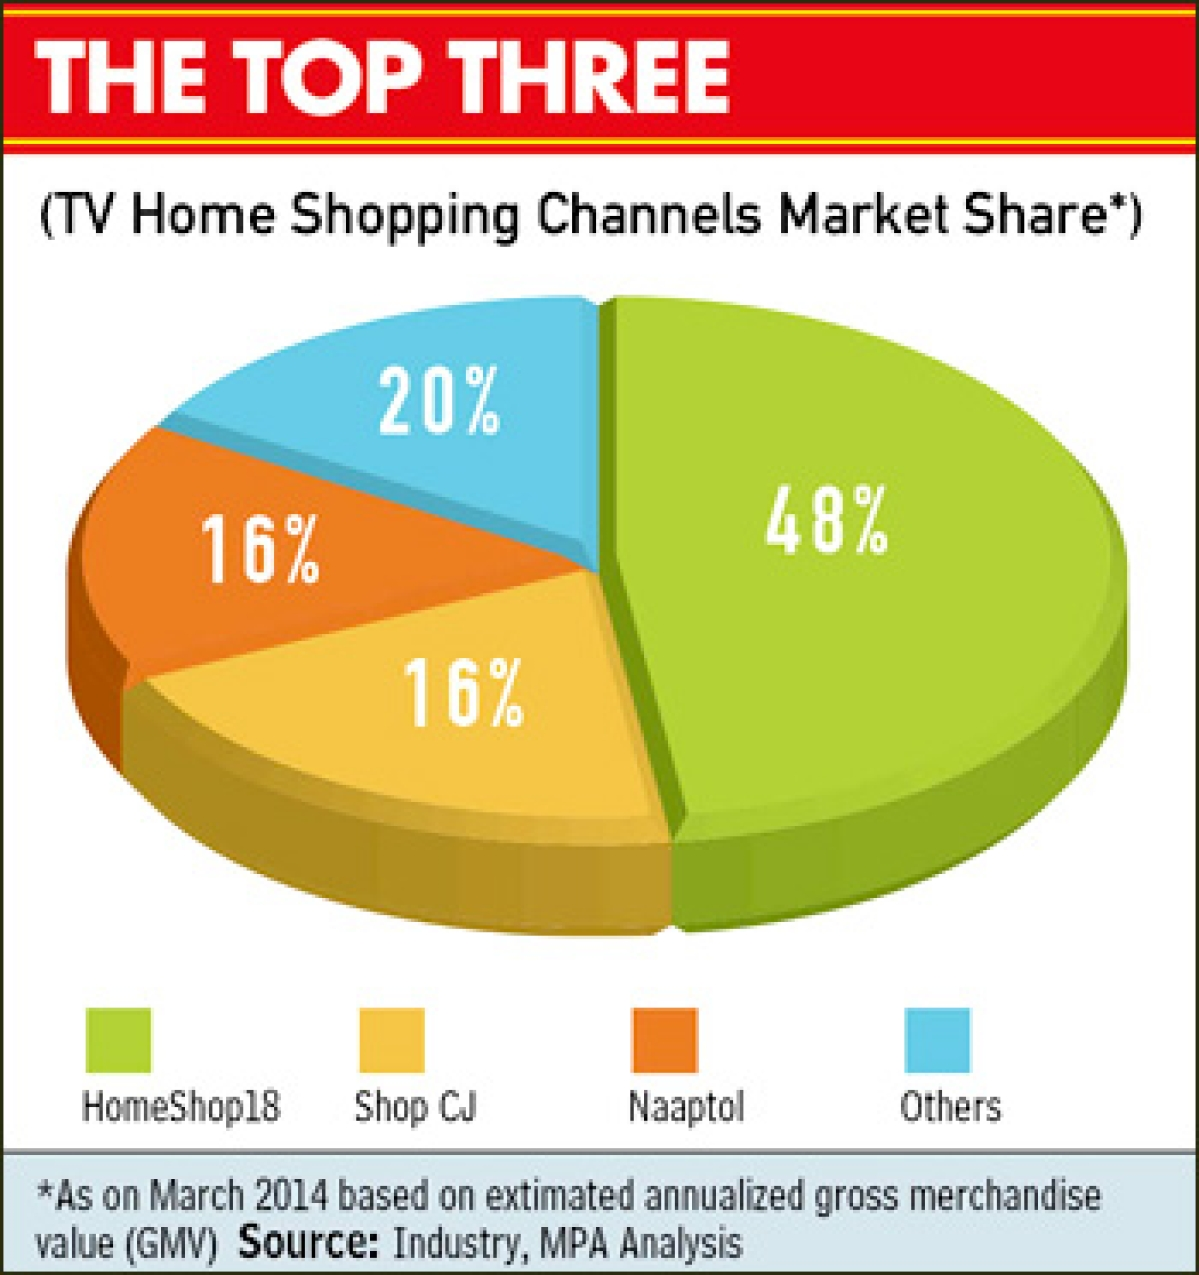 Are TV shopping channels holding their own?